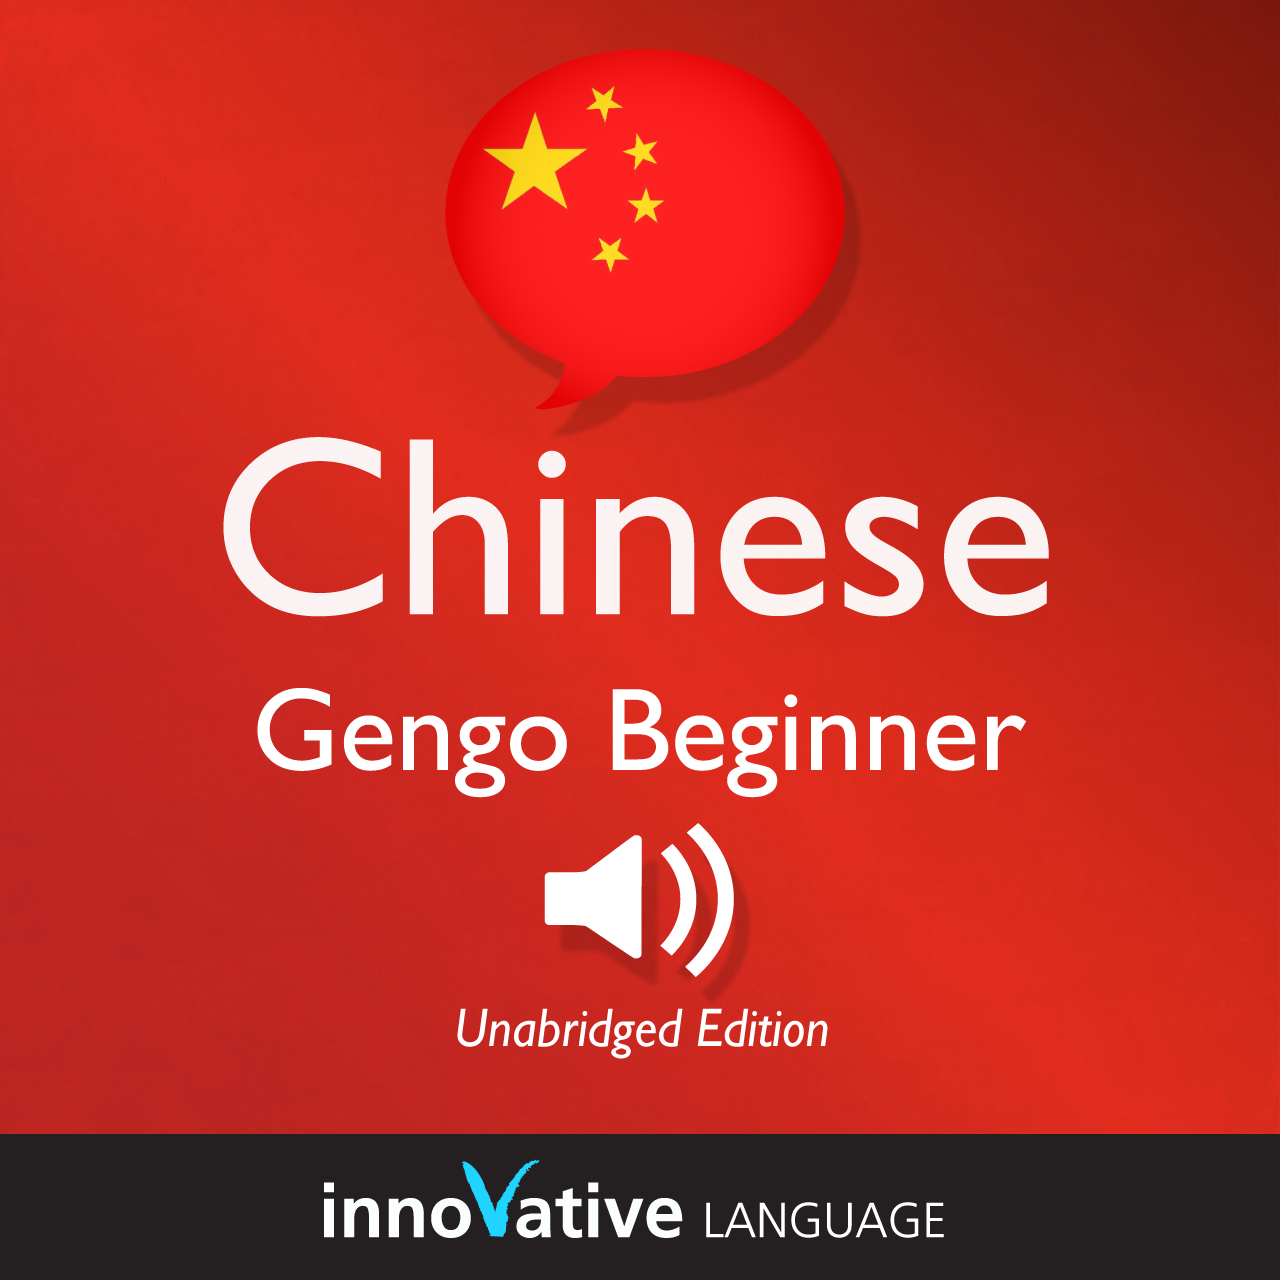 Audiobook Chinese - Gengo Beginner Chinese